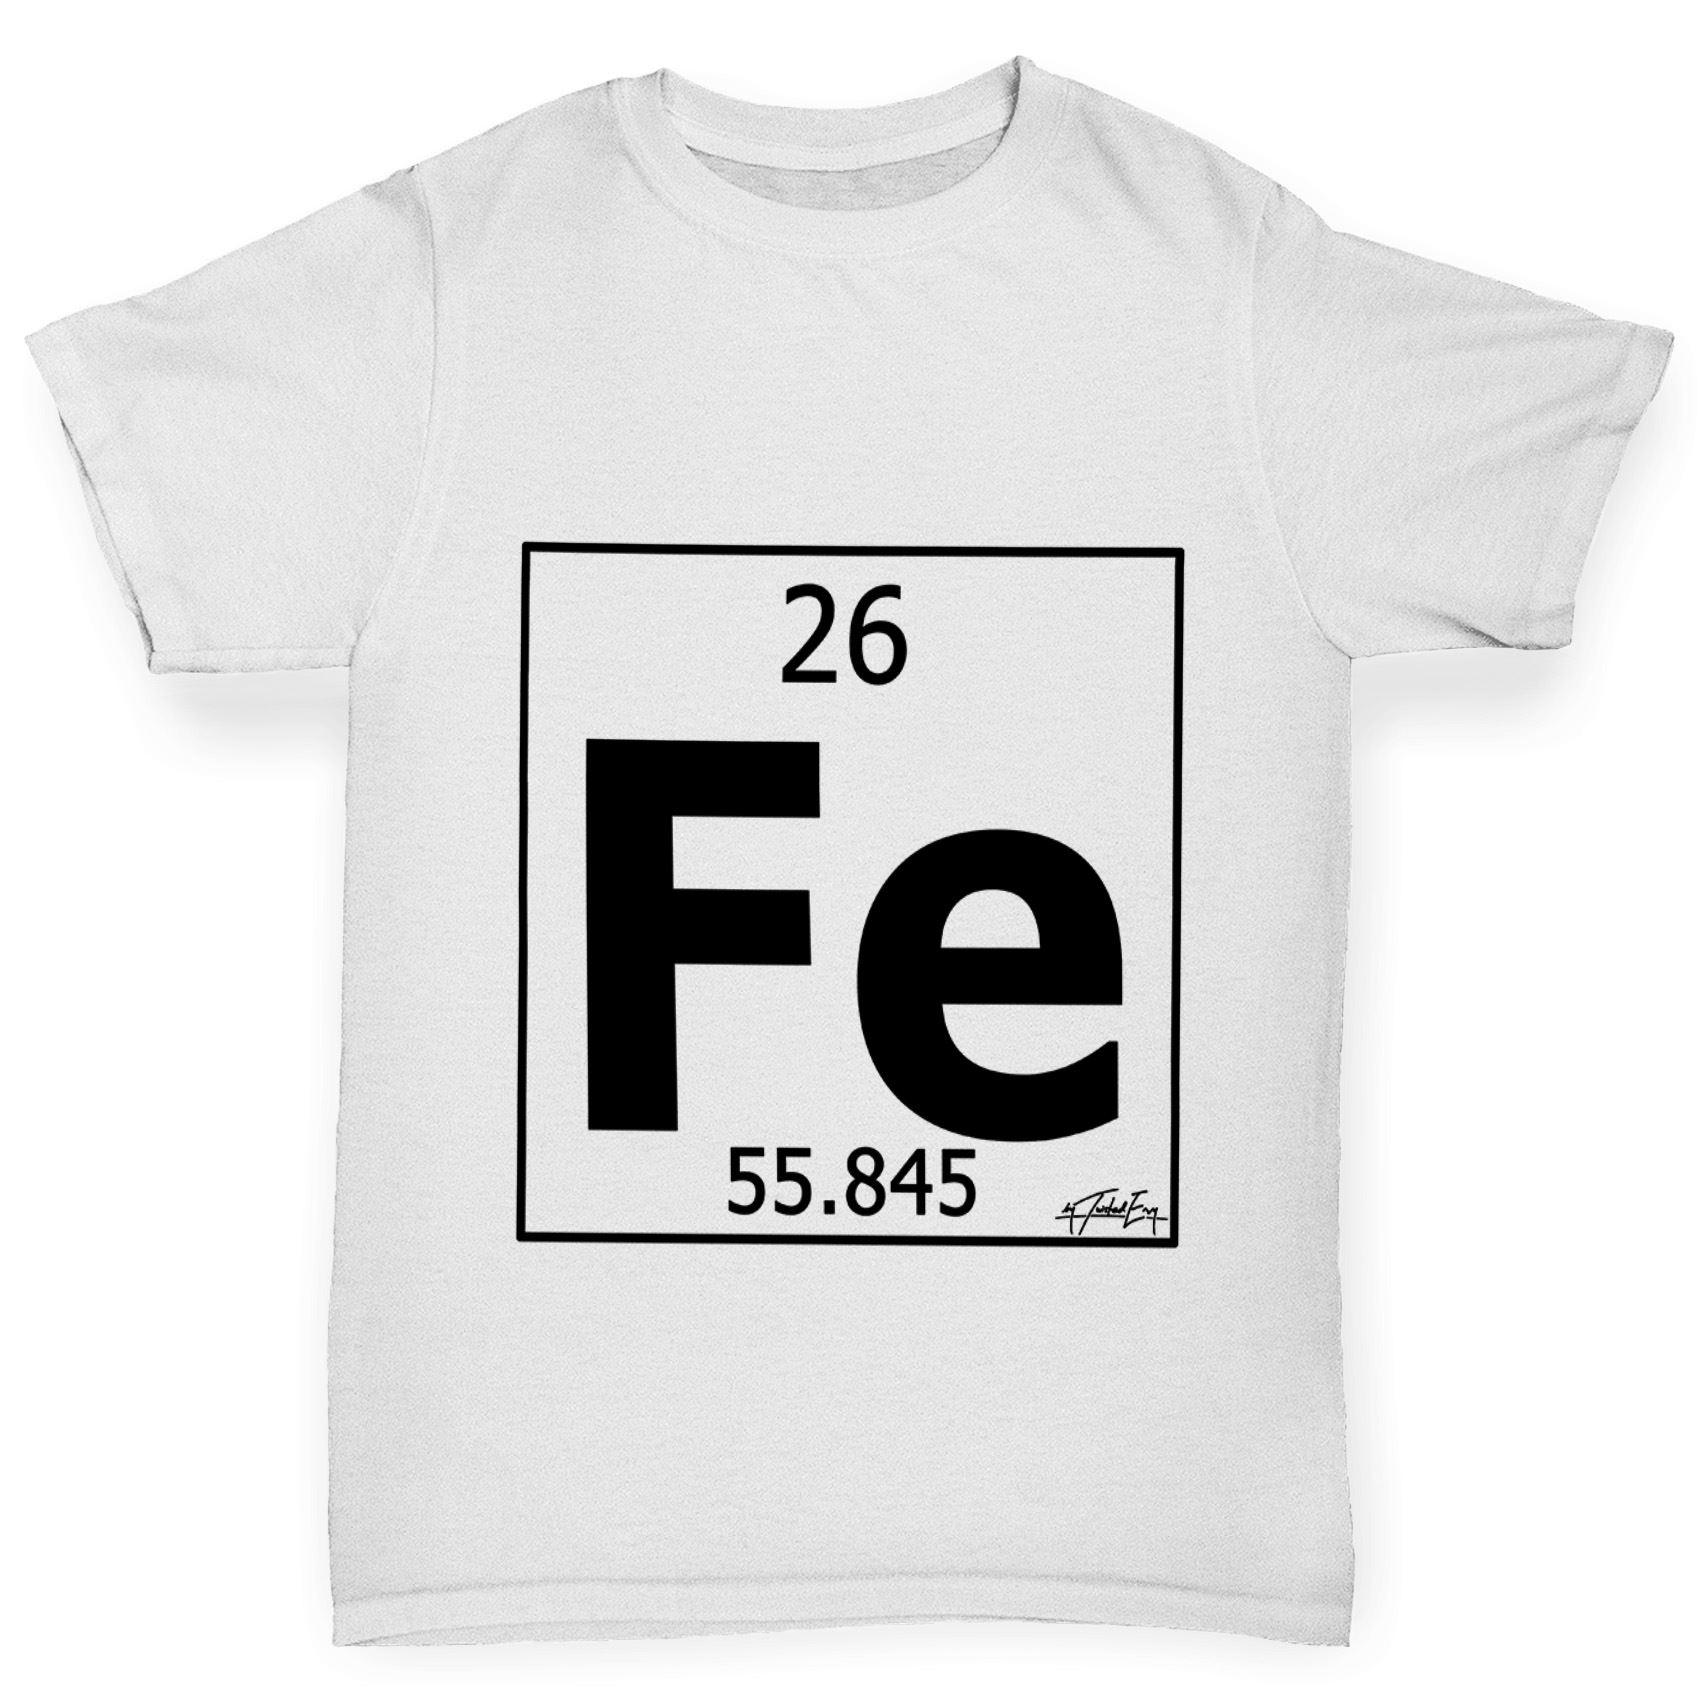 Twisted envy boys periodic table element fe iron t shirt ebay twisted envy boy 039 s periodic table element gamestrikefo Gallery